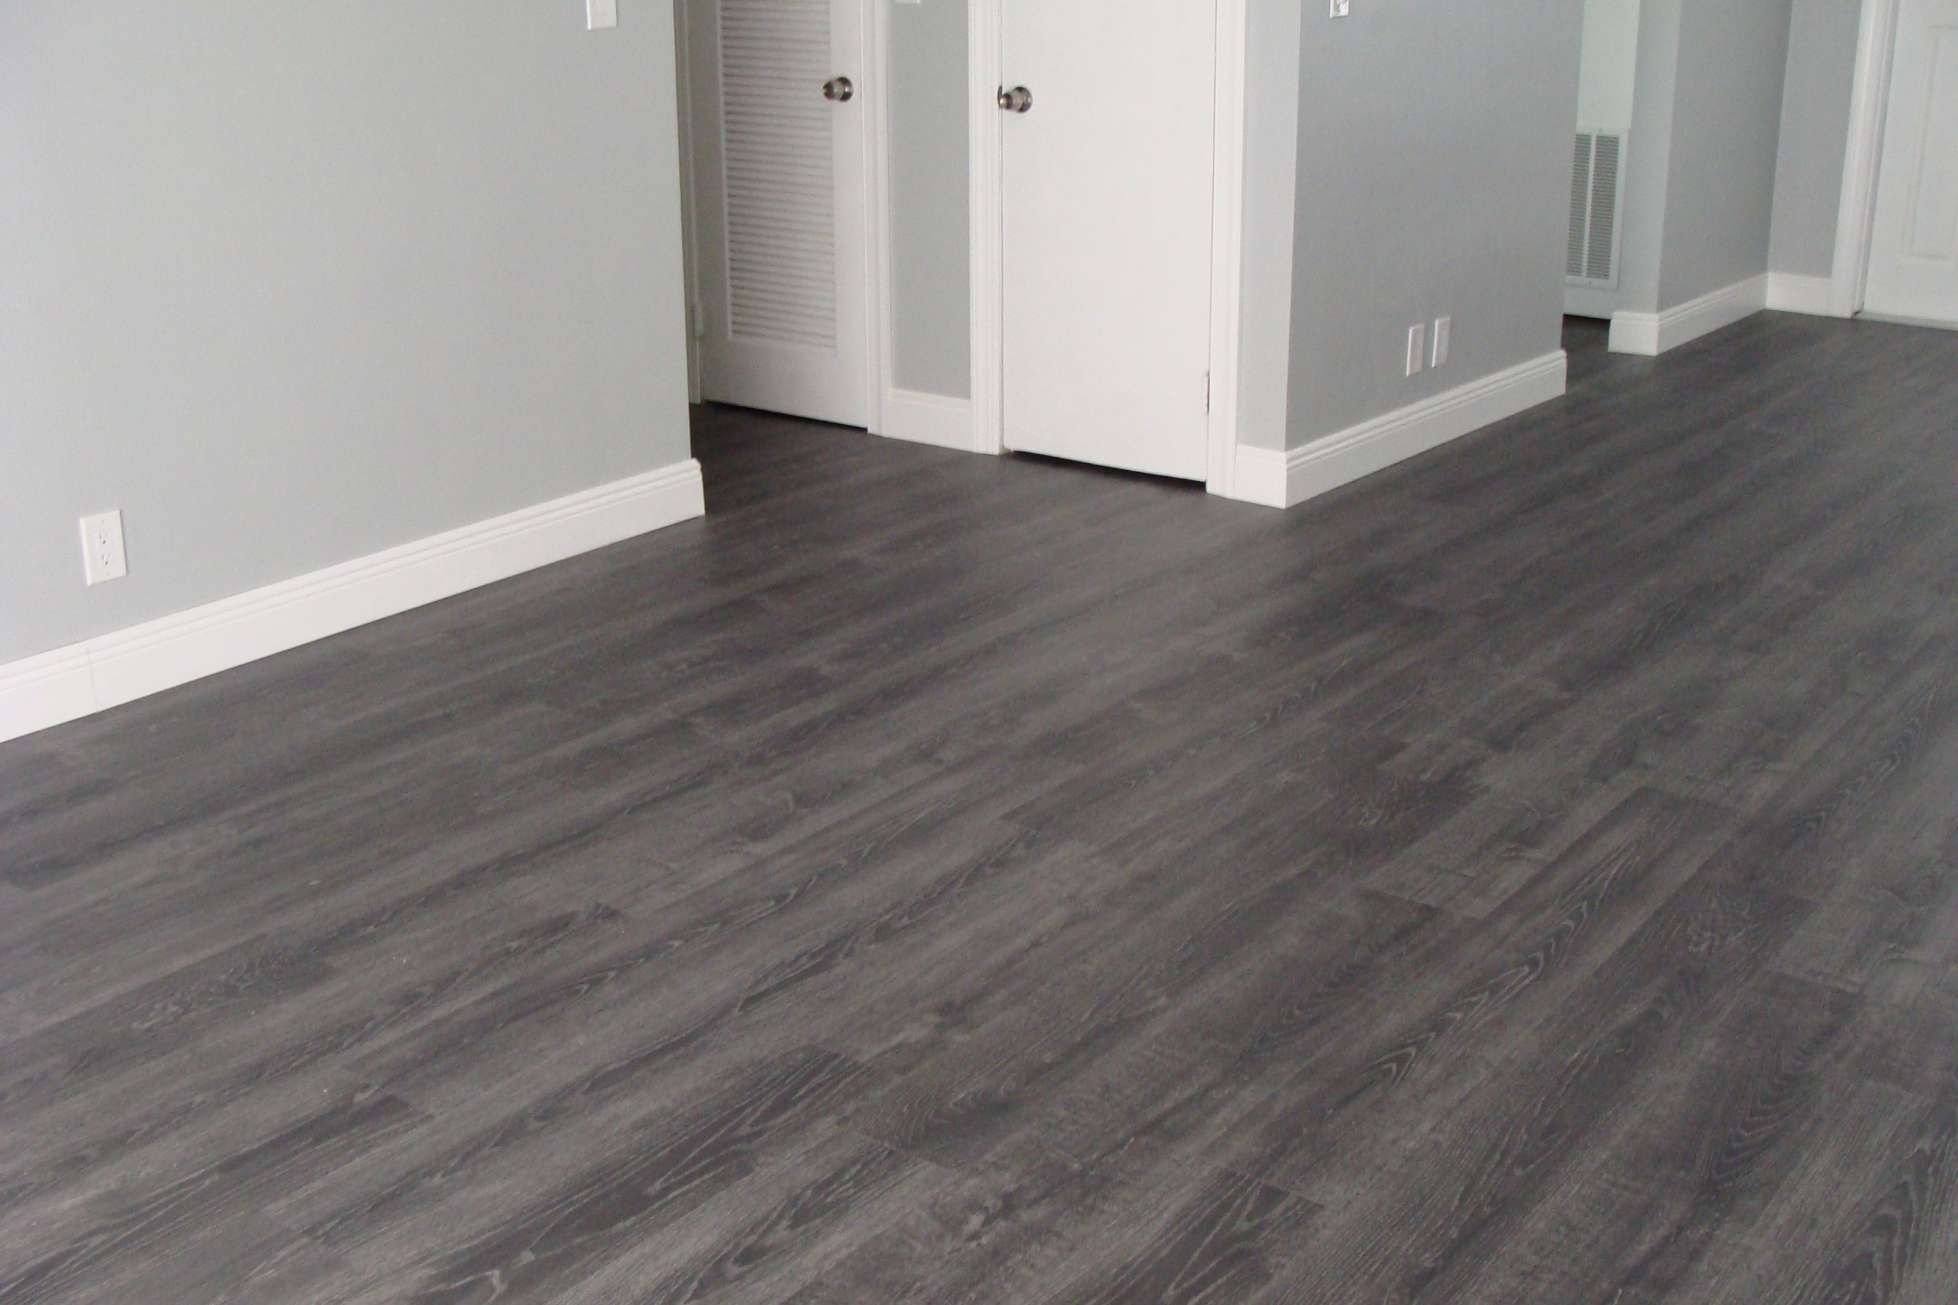 7 Awesome Dark Grey Wood Floors Collection Grey Wooden Floor Grey Flooring Living Room Wood Floor